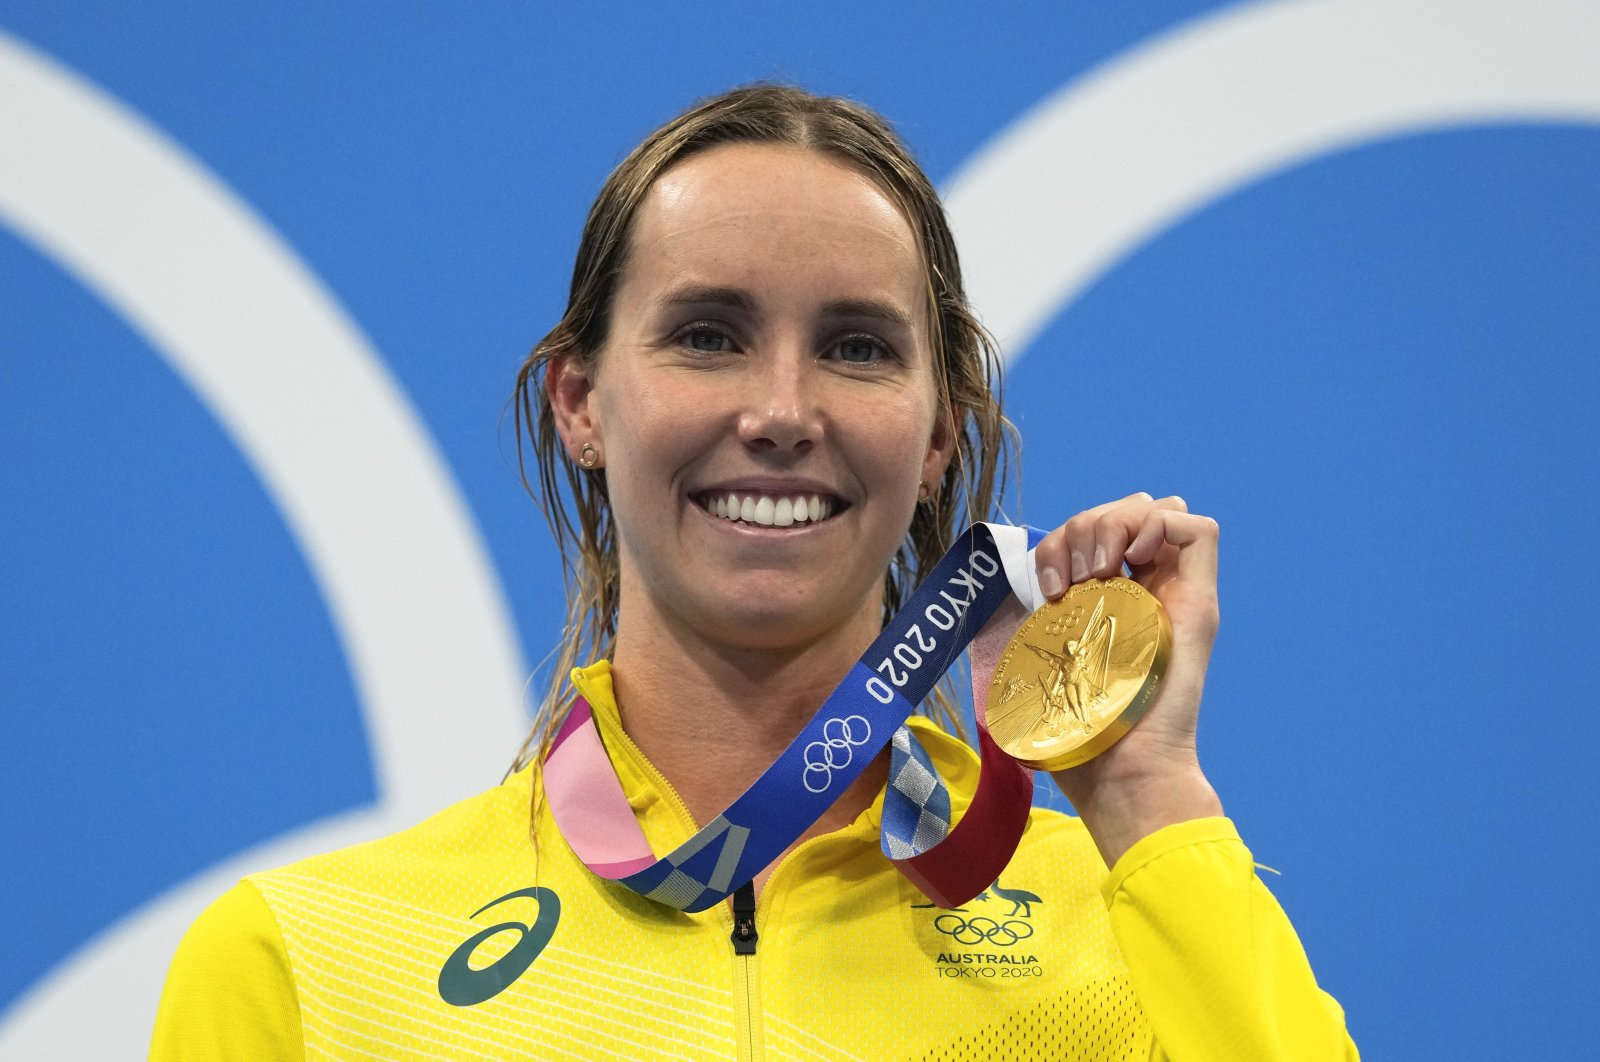 Australia's Emma Mckeon poses with the gold medal in the women's 50-meter freestyle final at the 2020 Summer Olympics, Tokyo, Japan, Aug. 1, 2021. (AP Photo)